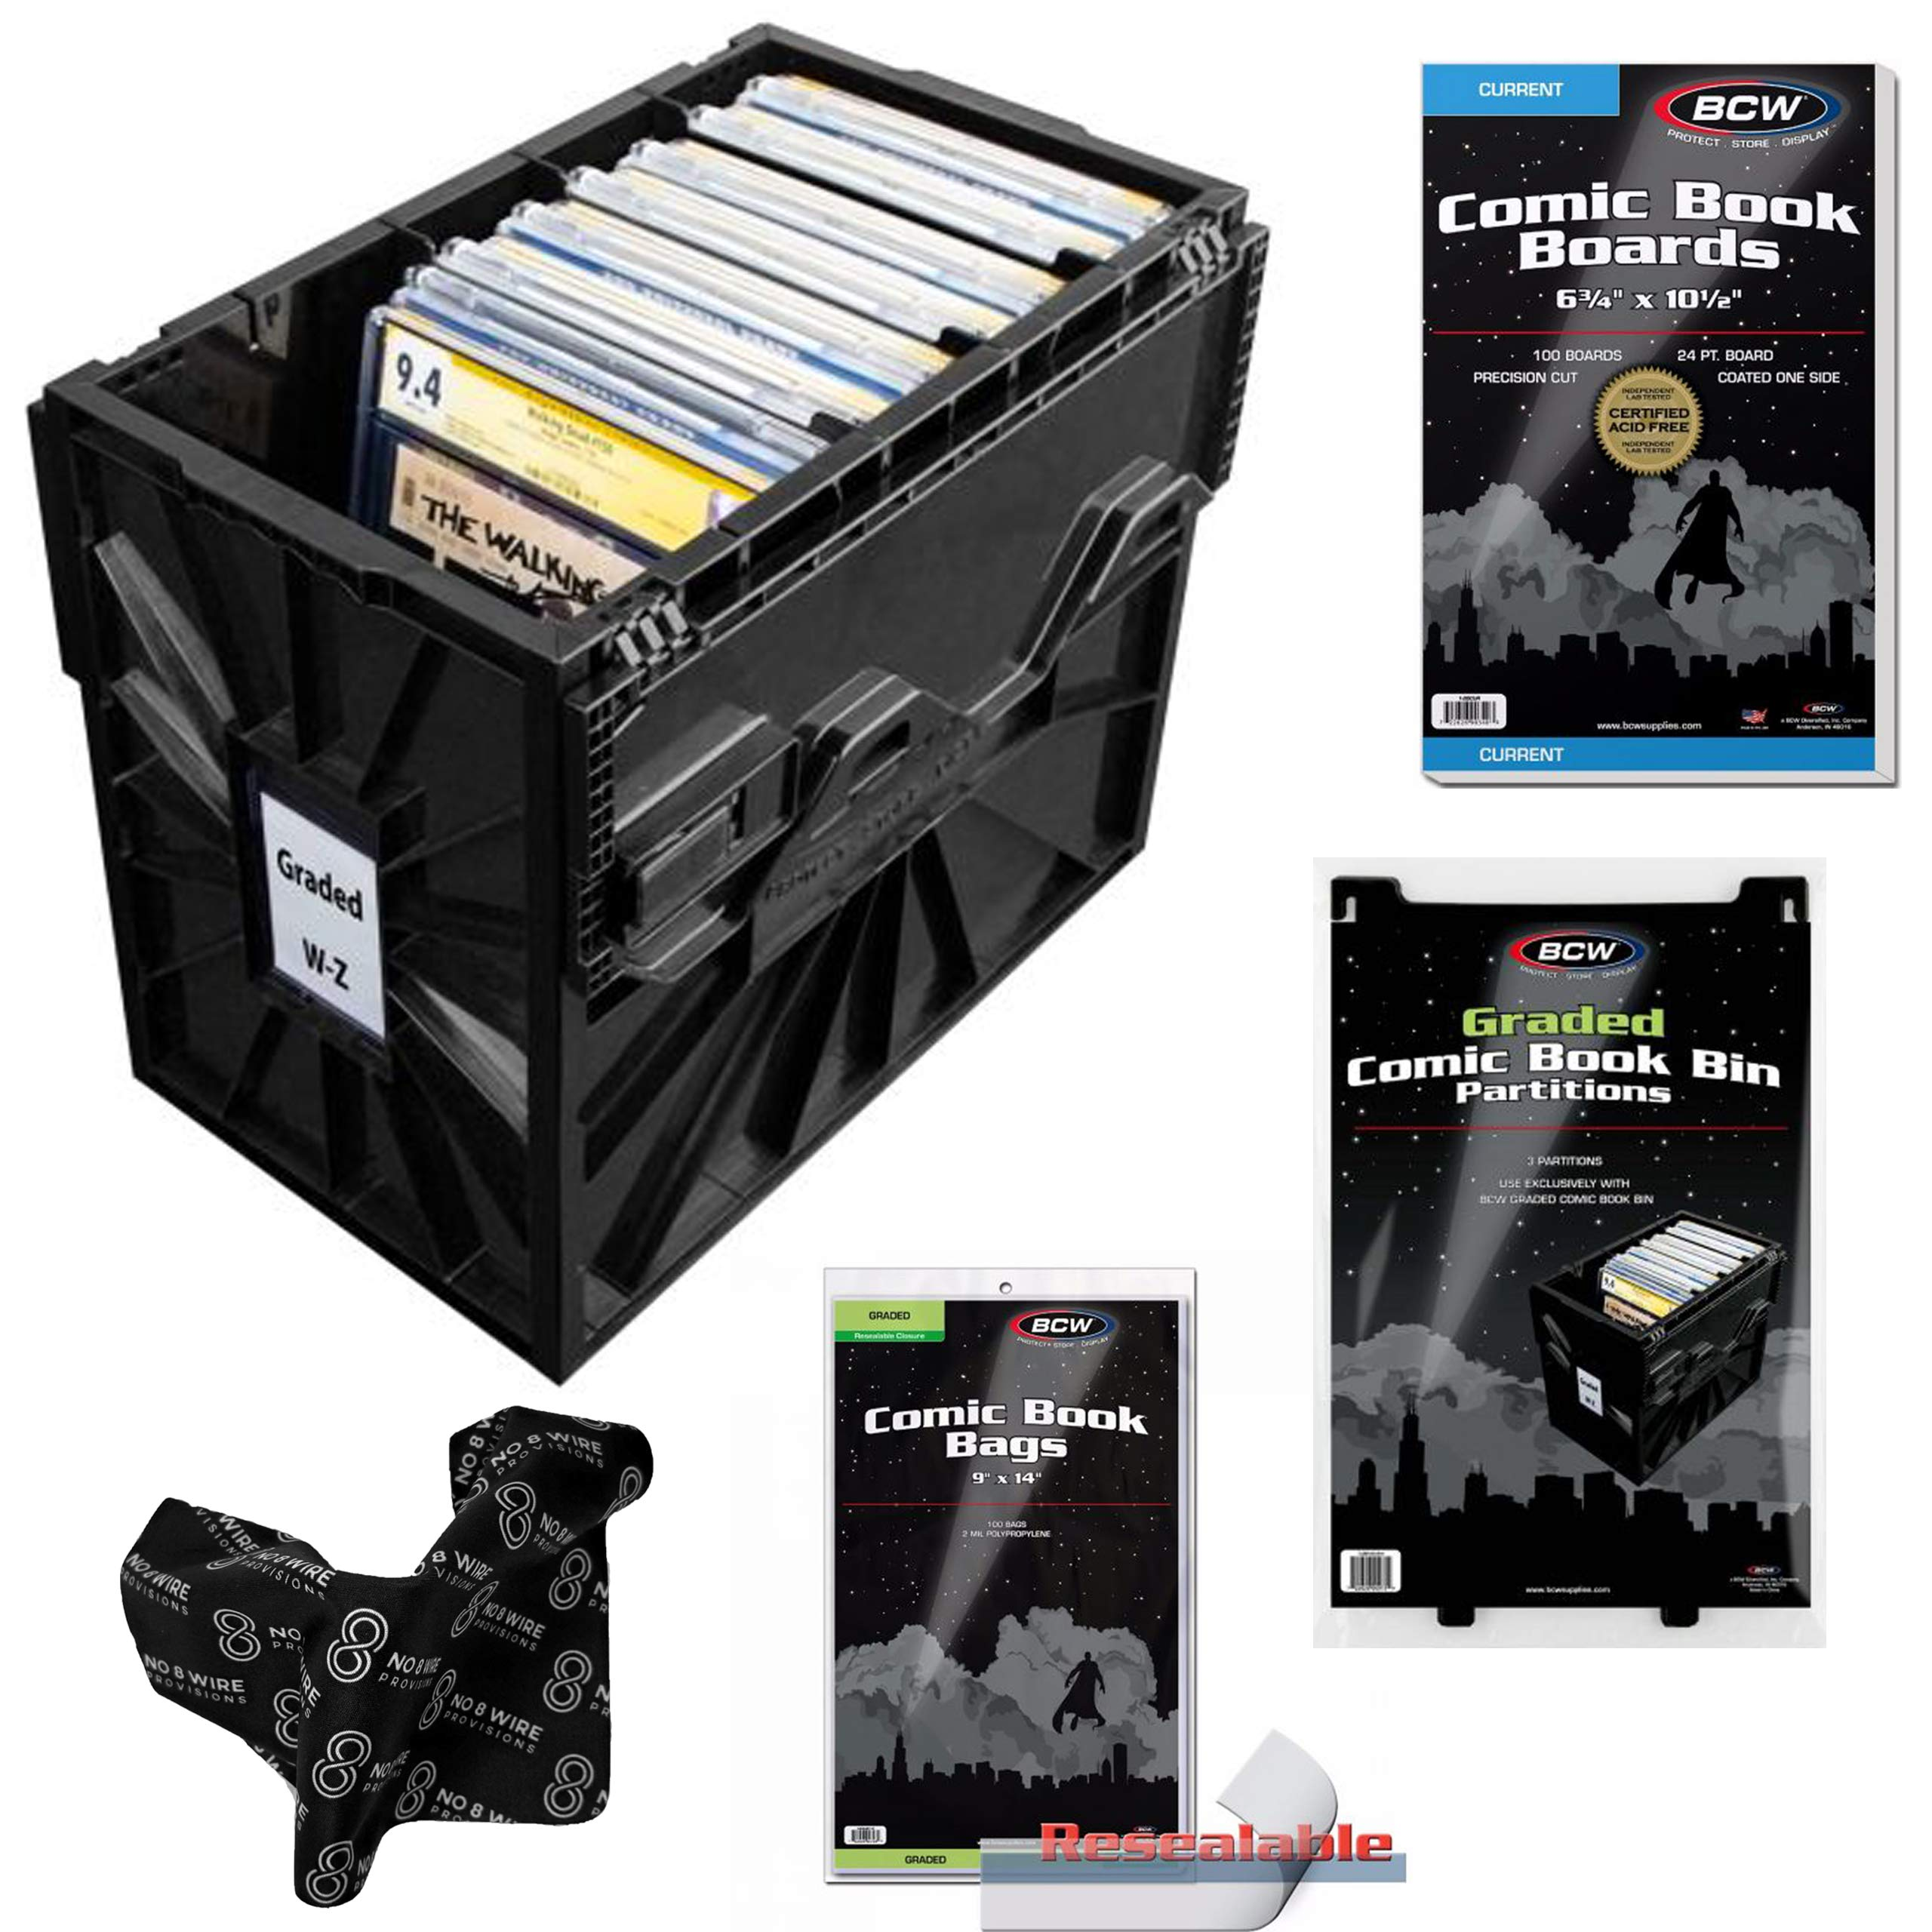 BCW Starter Graded Comic Book Storage Kit - Storage Box, Dividers, Resealable Bags and Backing Boards by No. 8 Wire Provisions